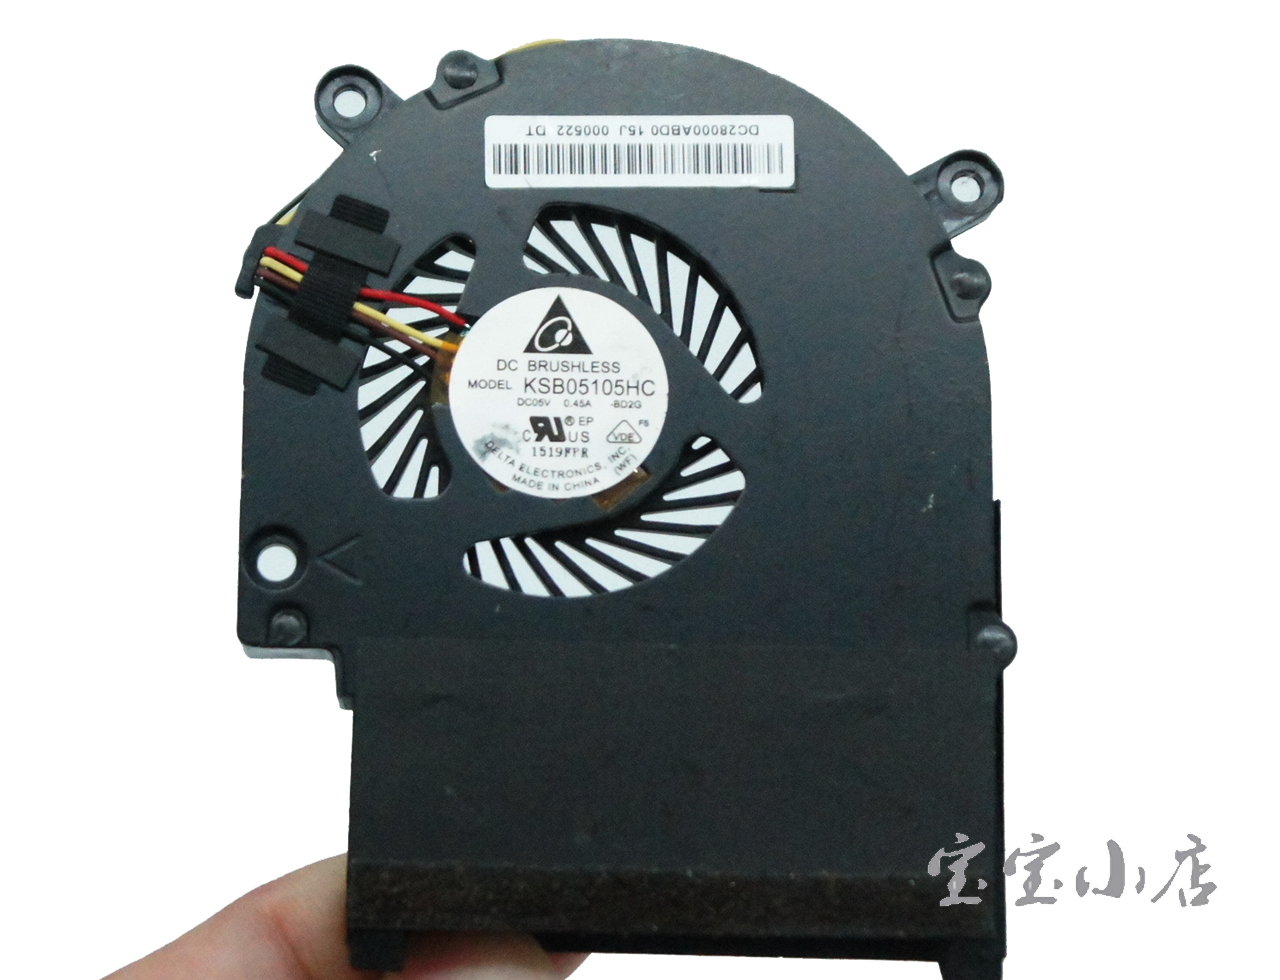 宏碁 Acer TravelMate 8481 Cpu Cooling Fan DC28000ABD0 笔记本内置 散热风扇